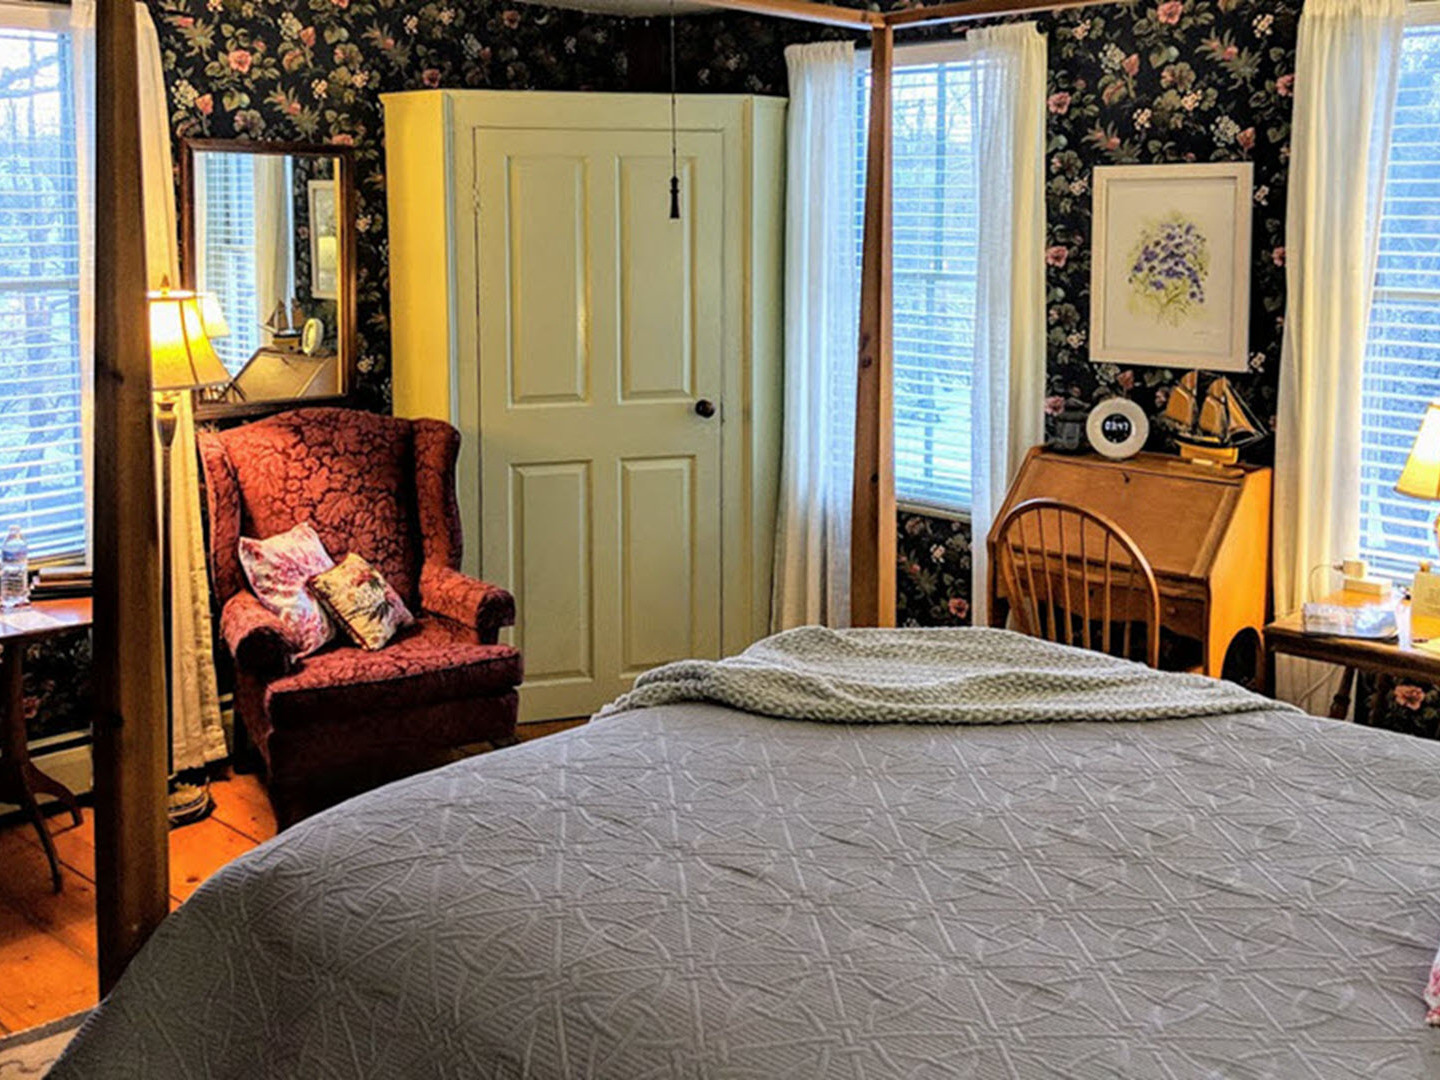 A bedroom with a bed and desk in a room at Elms of Camden.